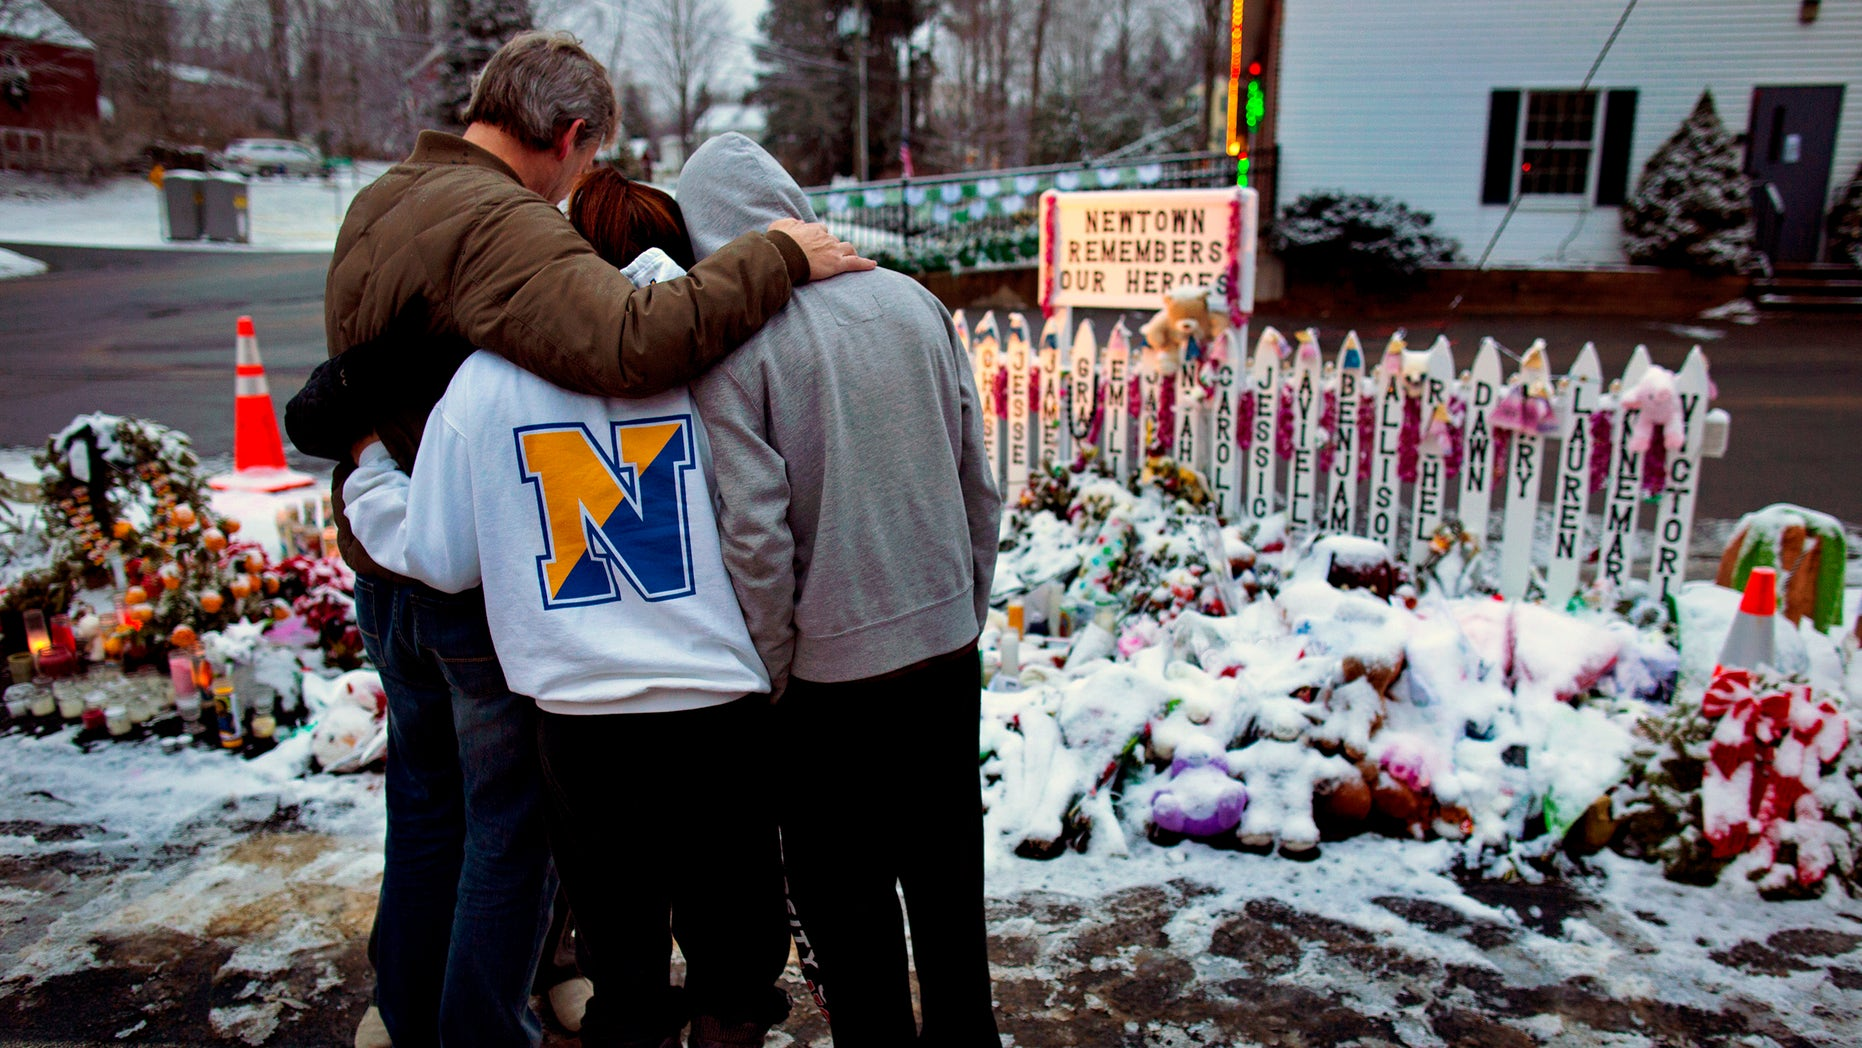 Members of the Newton community mourn those lost in the Sandy Hook Elementary School massacre.